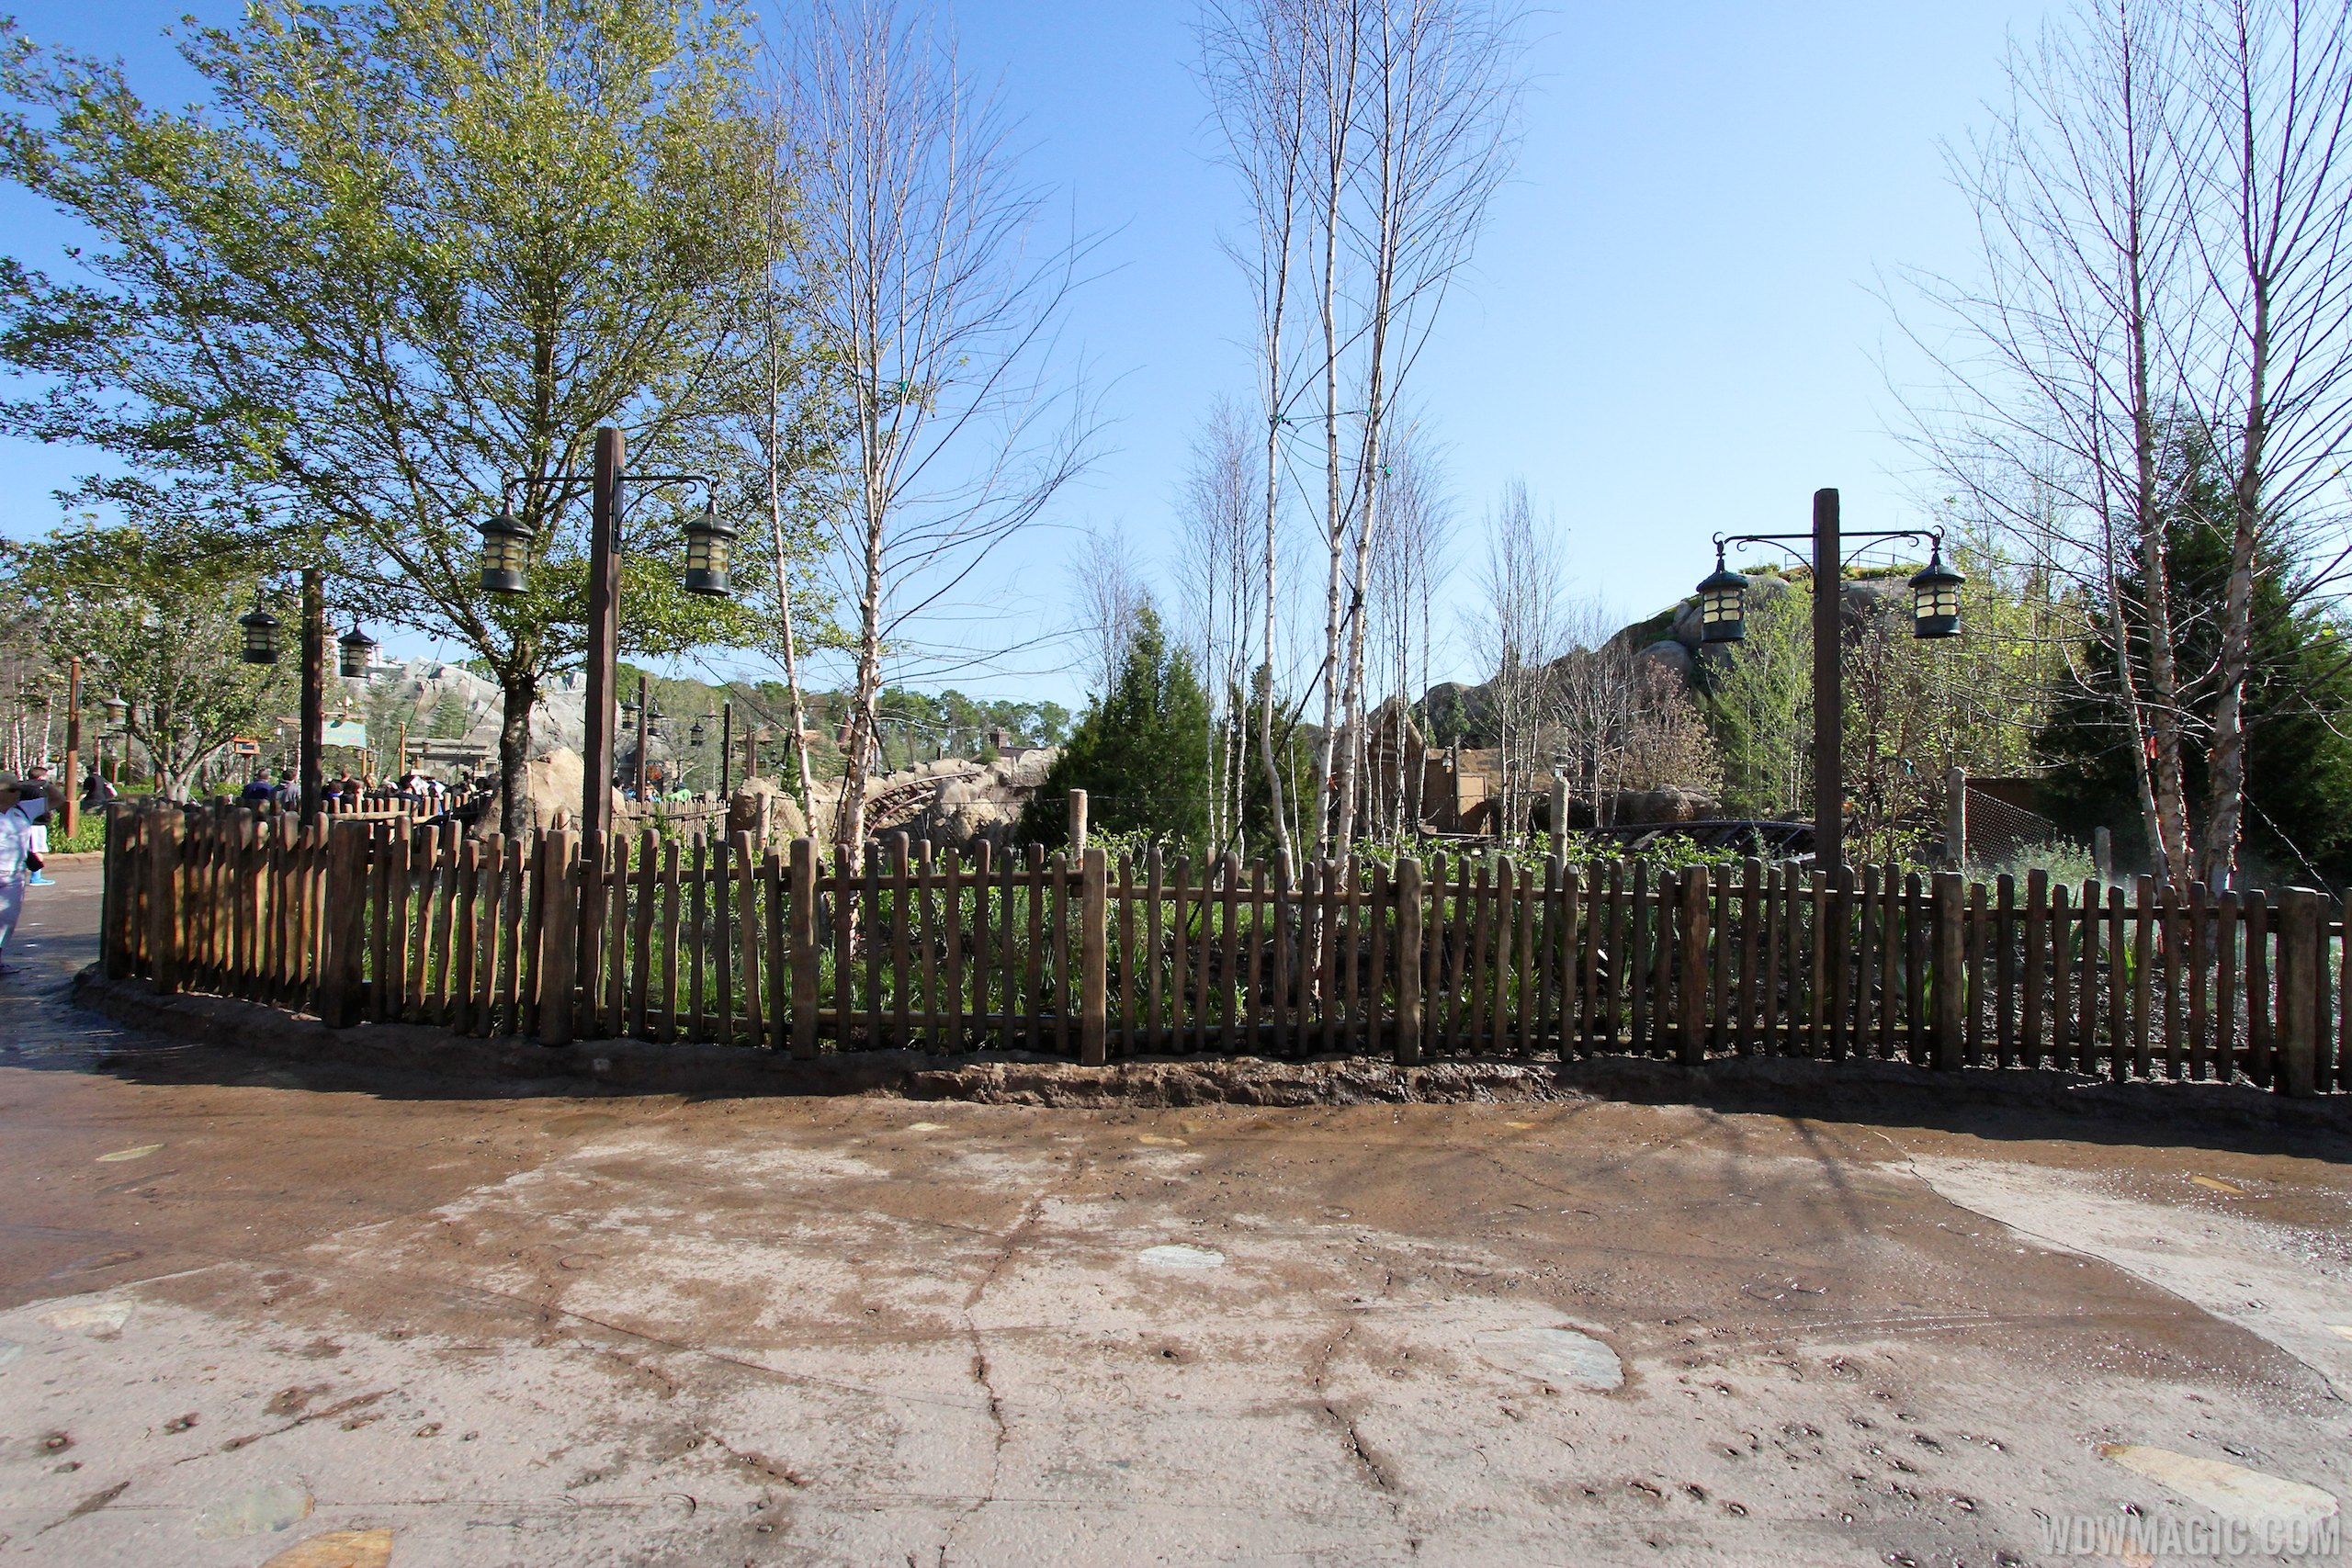 Construction walls down on another section of the mine train coaster